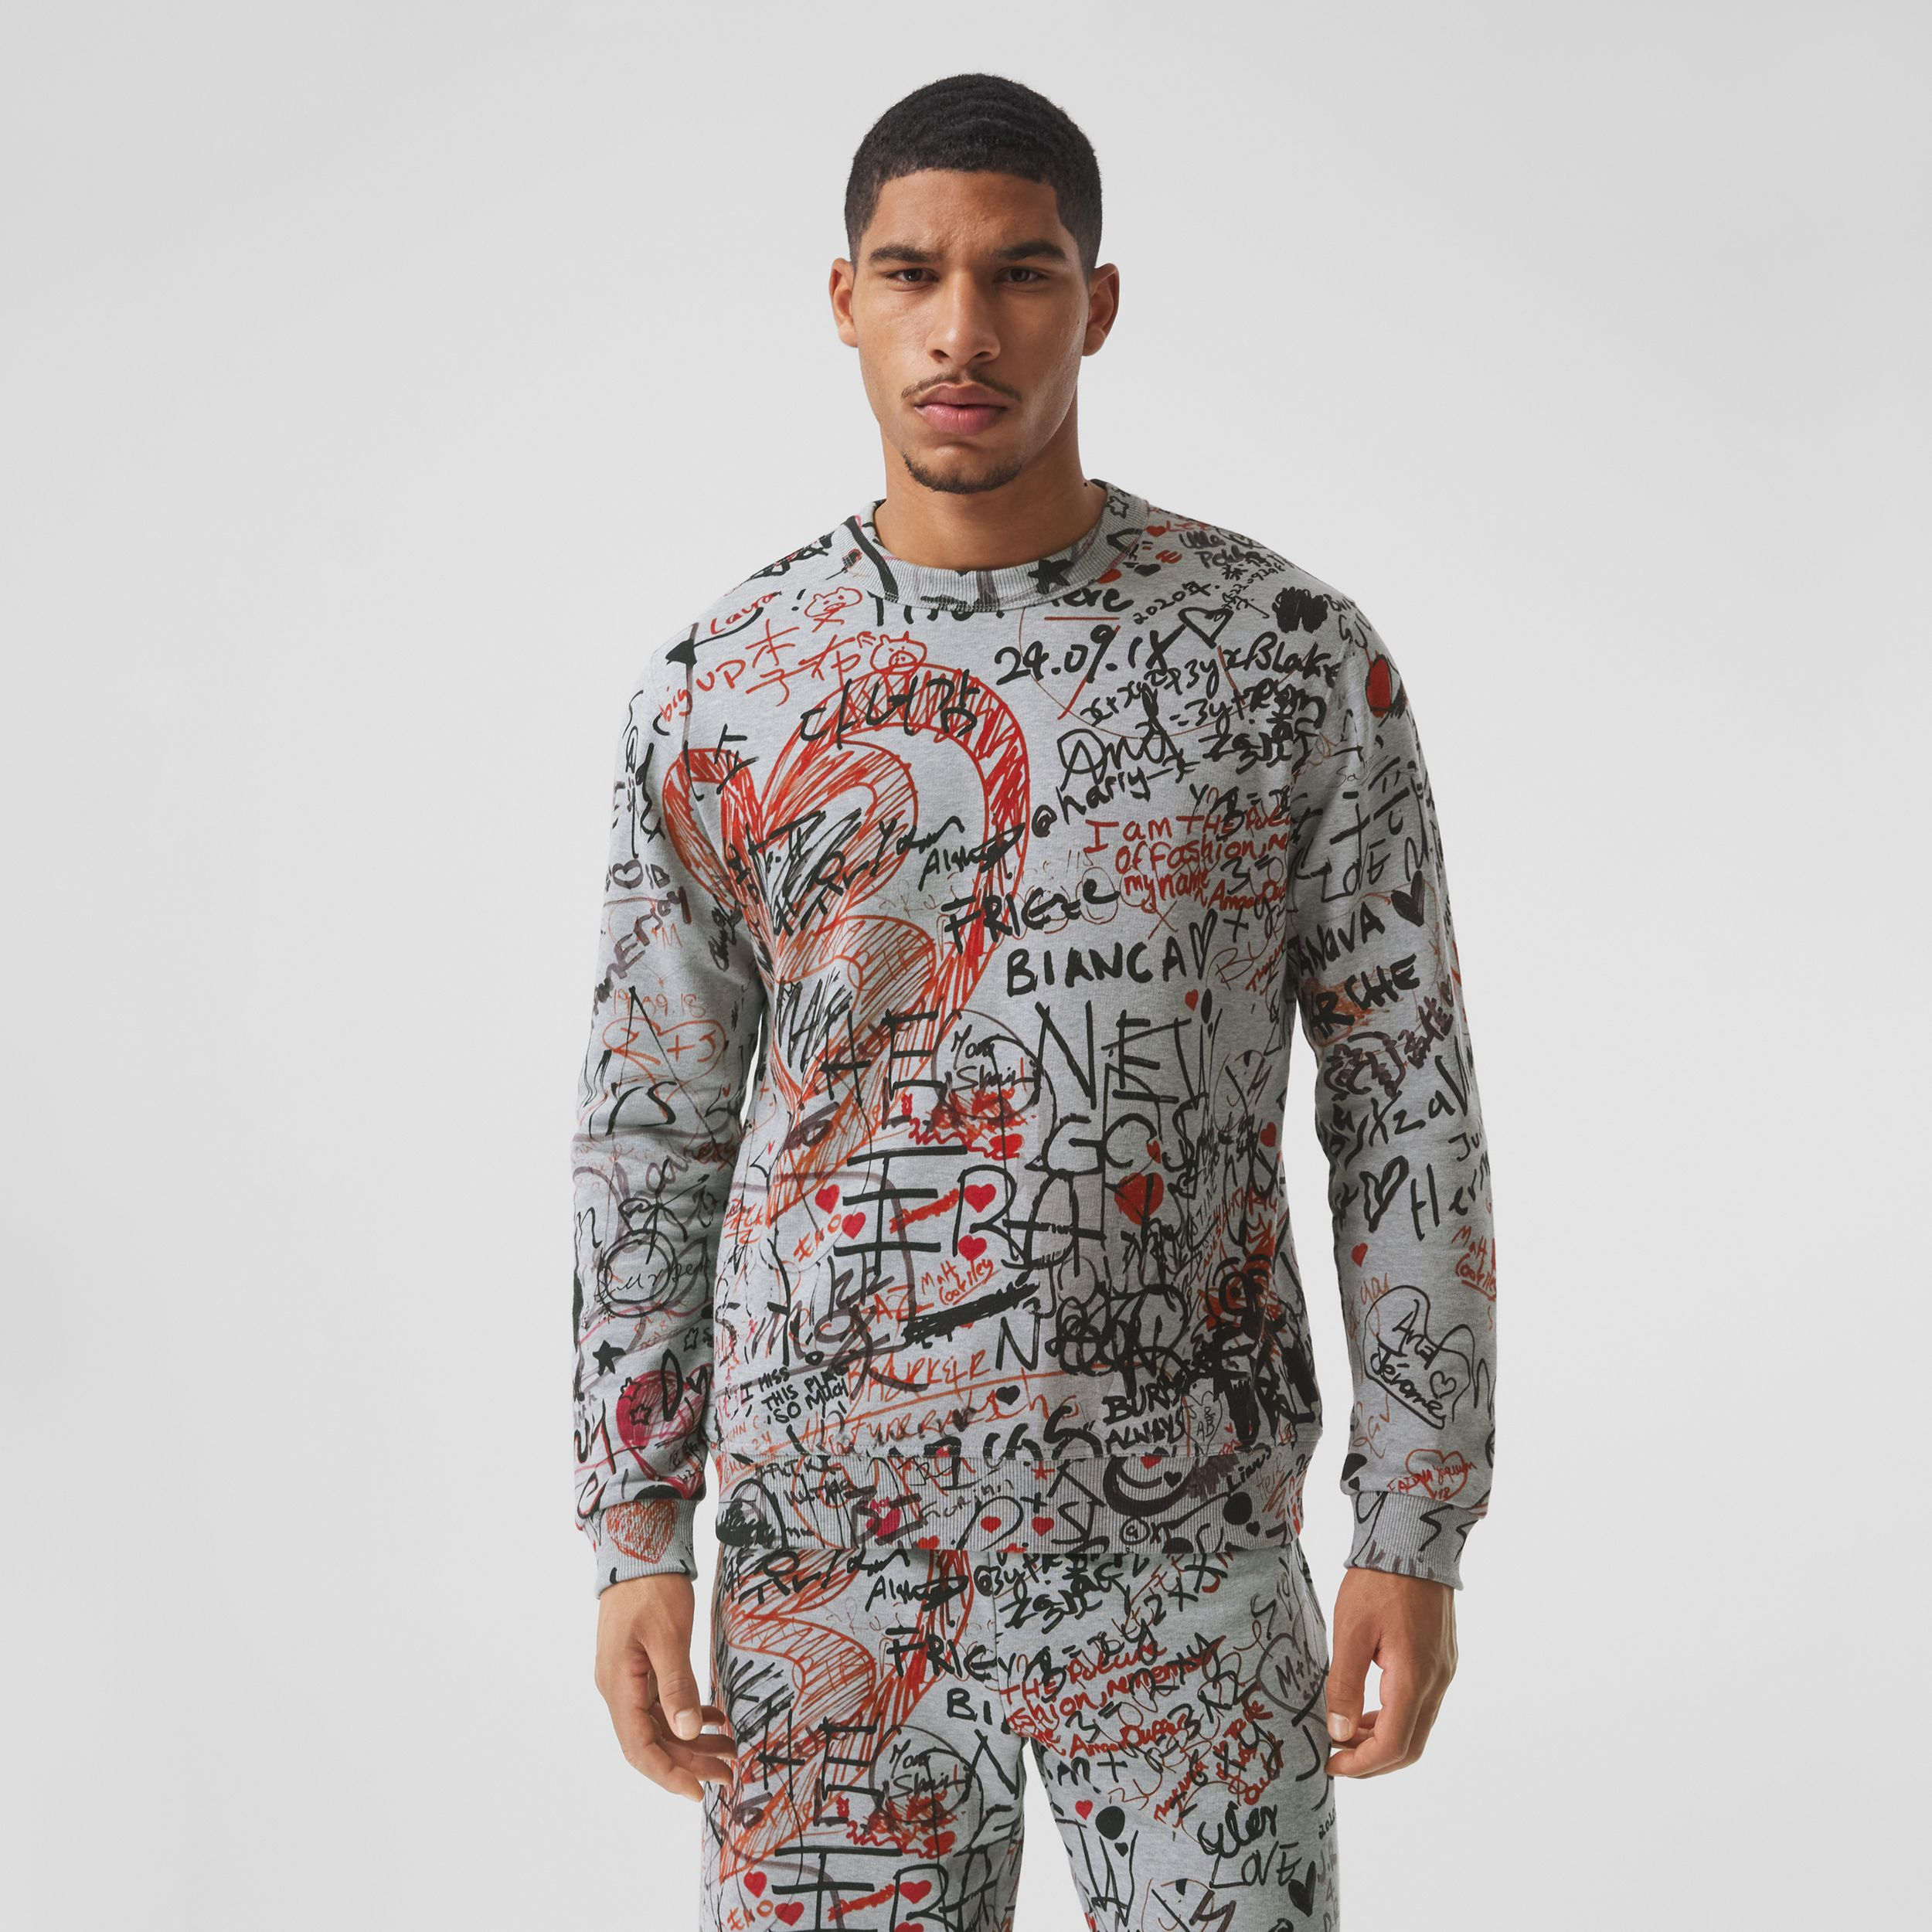 Graffiti Print Cotton Sweatshirt in Pale Grey Melange - Men | Burberry - 1